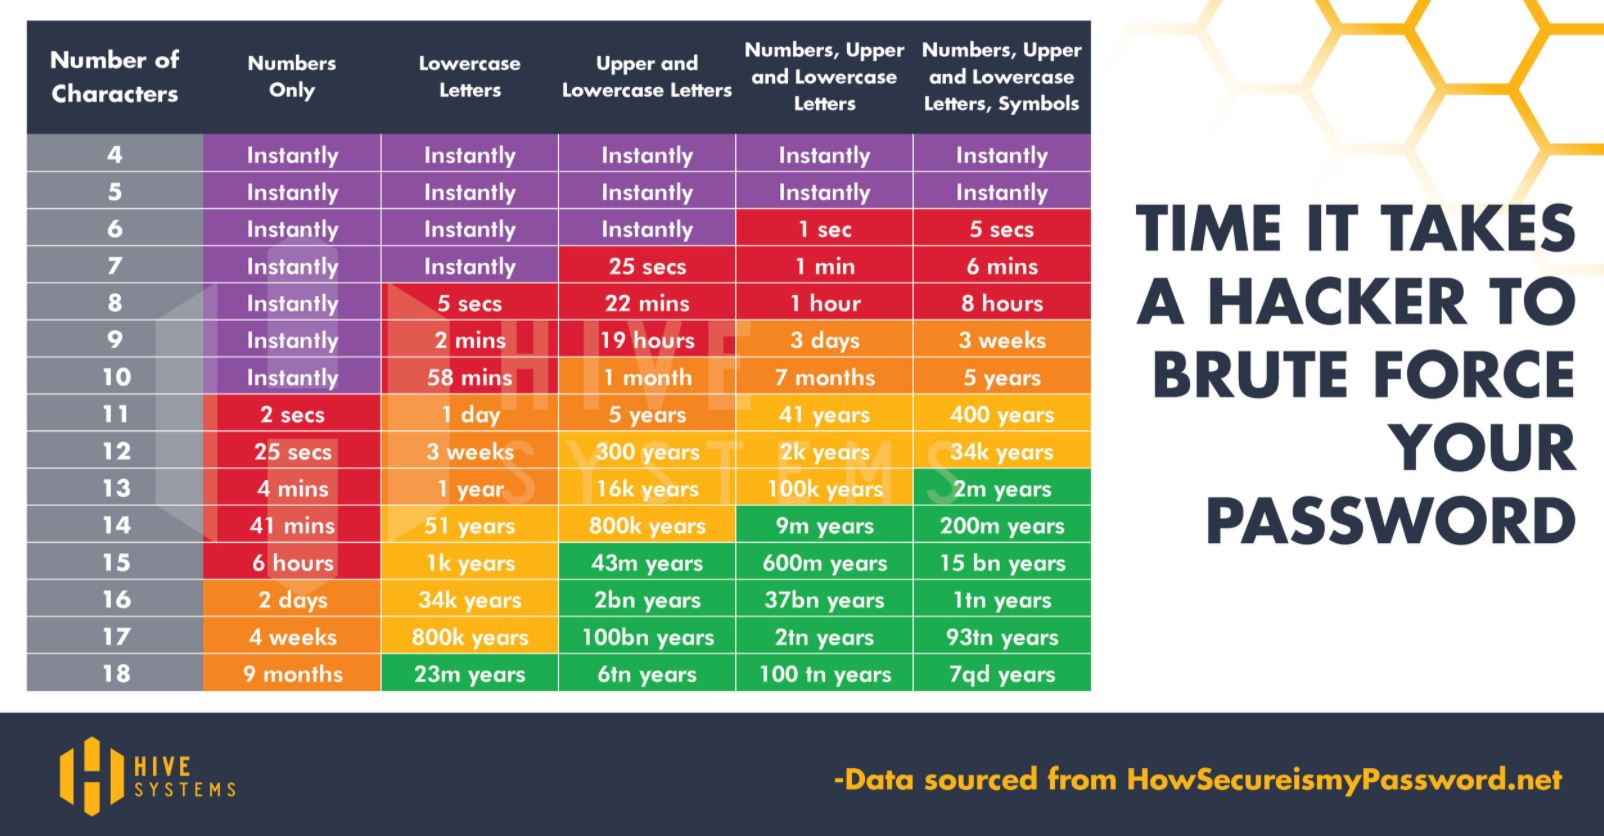 Hive Systems - the time it takes a hacker to crack your password